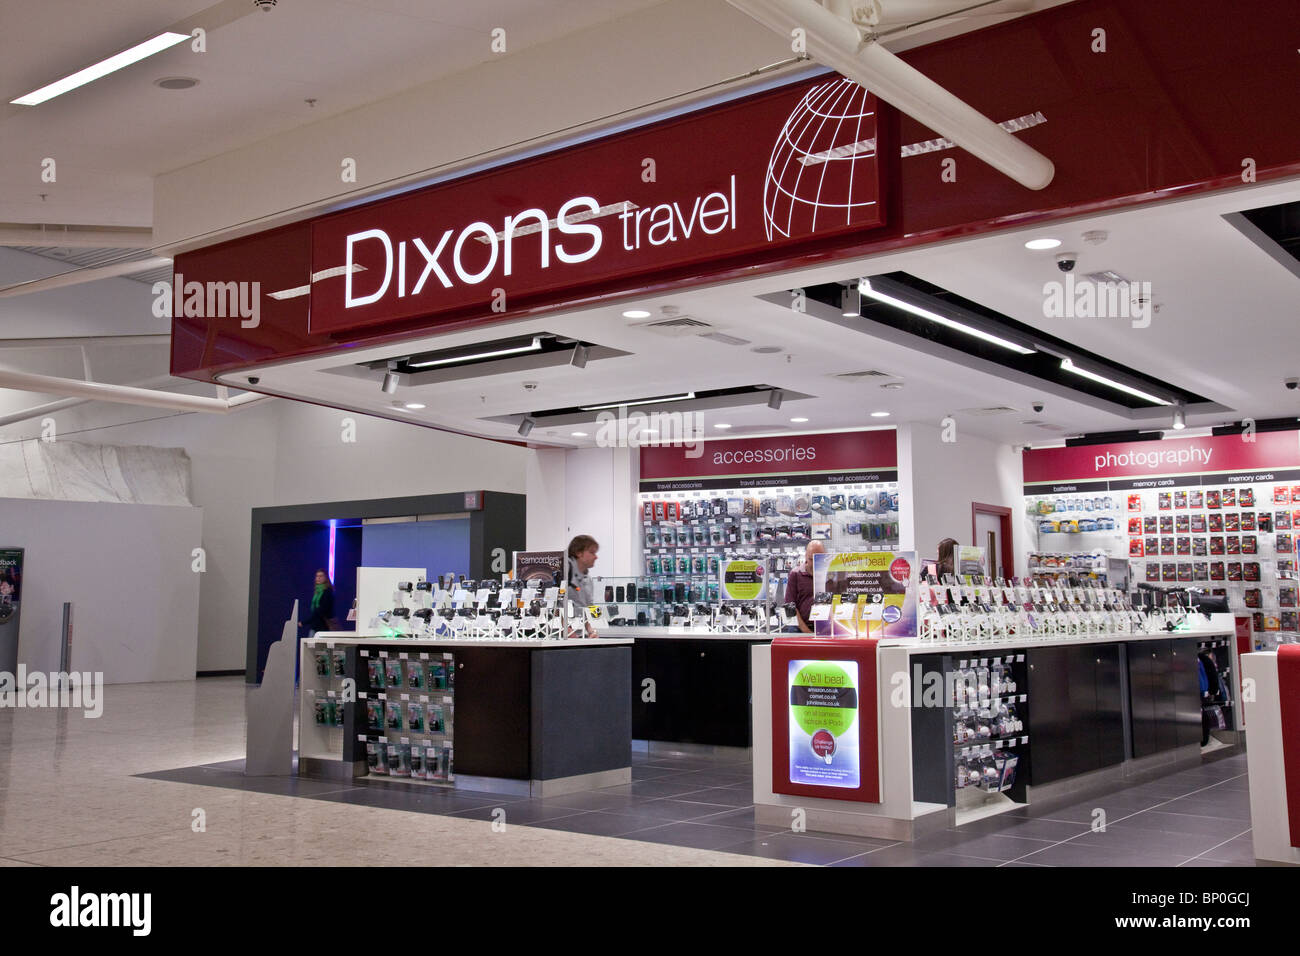 Customers and staff at the Dixons travel outlet at Edinburgh Airport, Scotland, UK Stock Photo